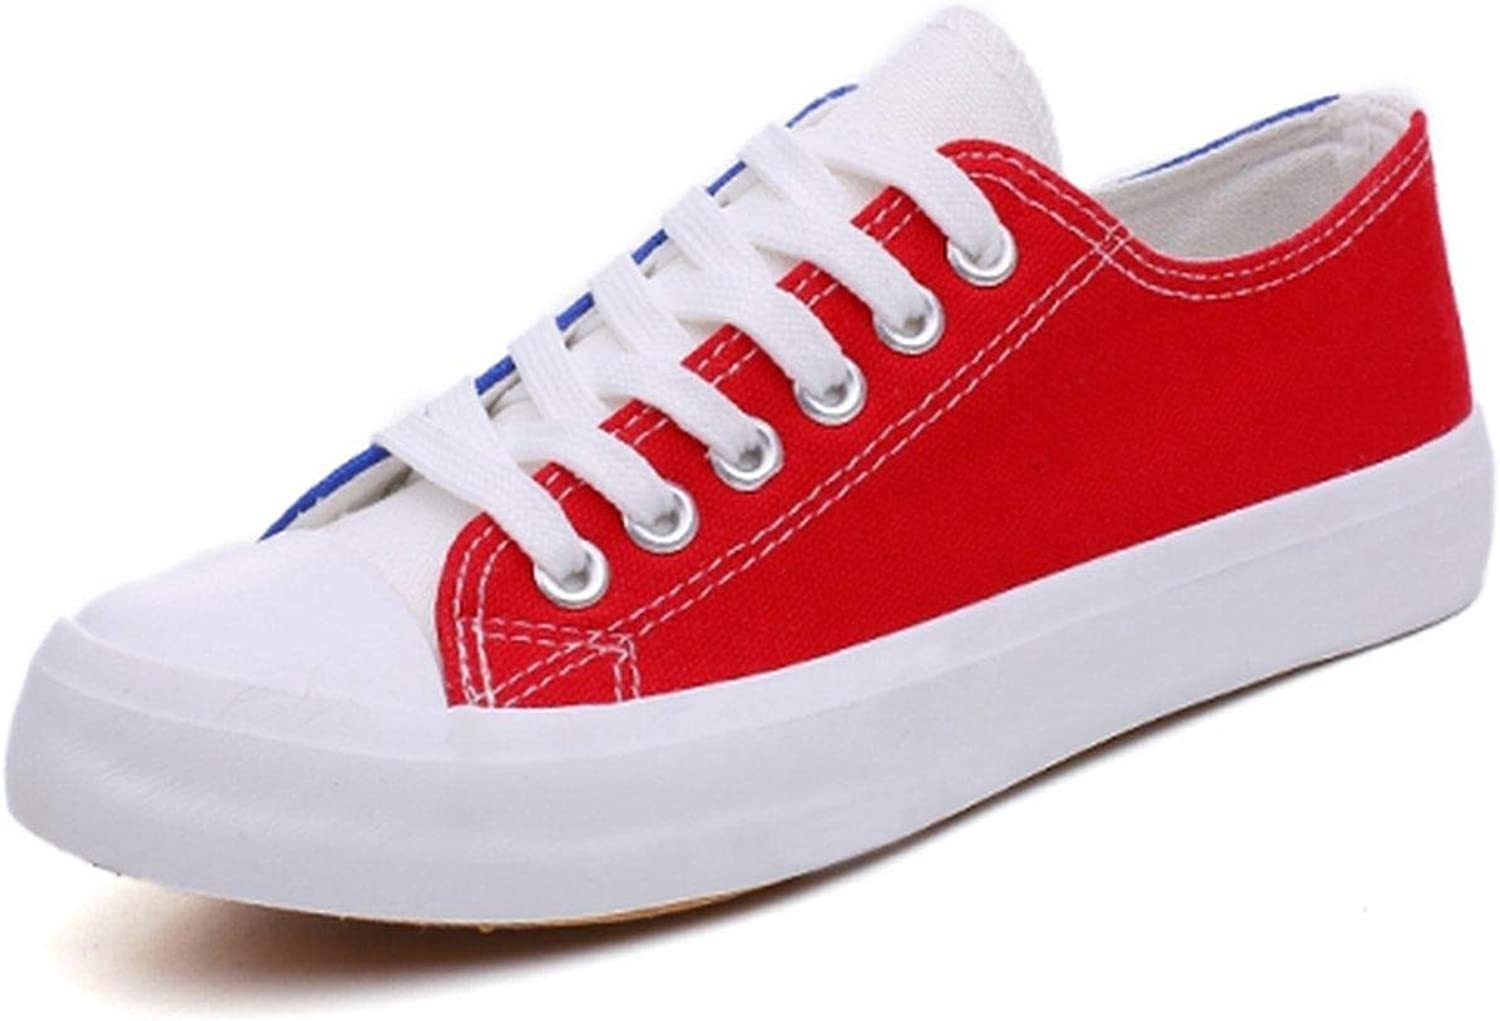 Women Vulcanized Sneakers Breathable Flats Casual colorful shoes